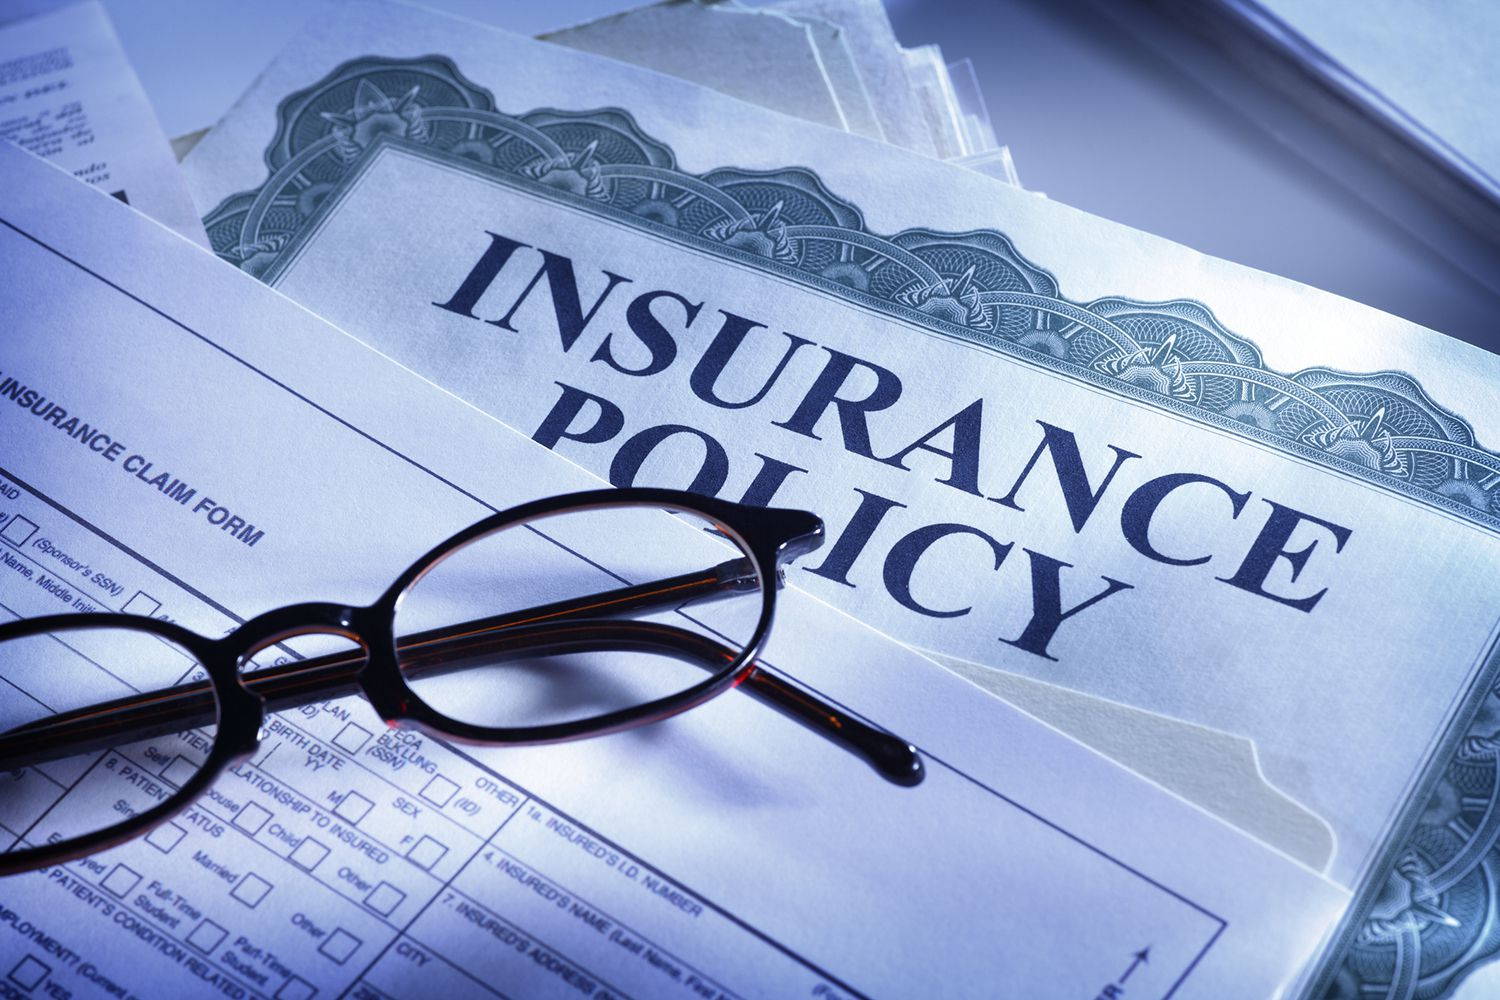 With insurance companies it is not safe to assume anything